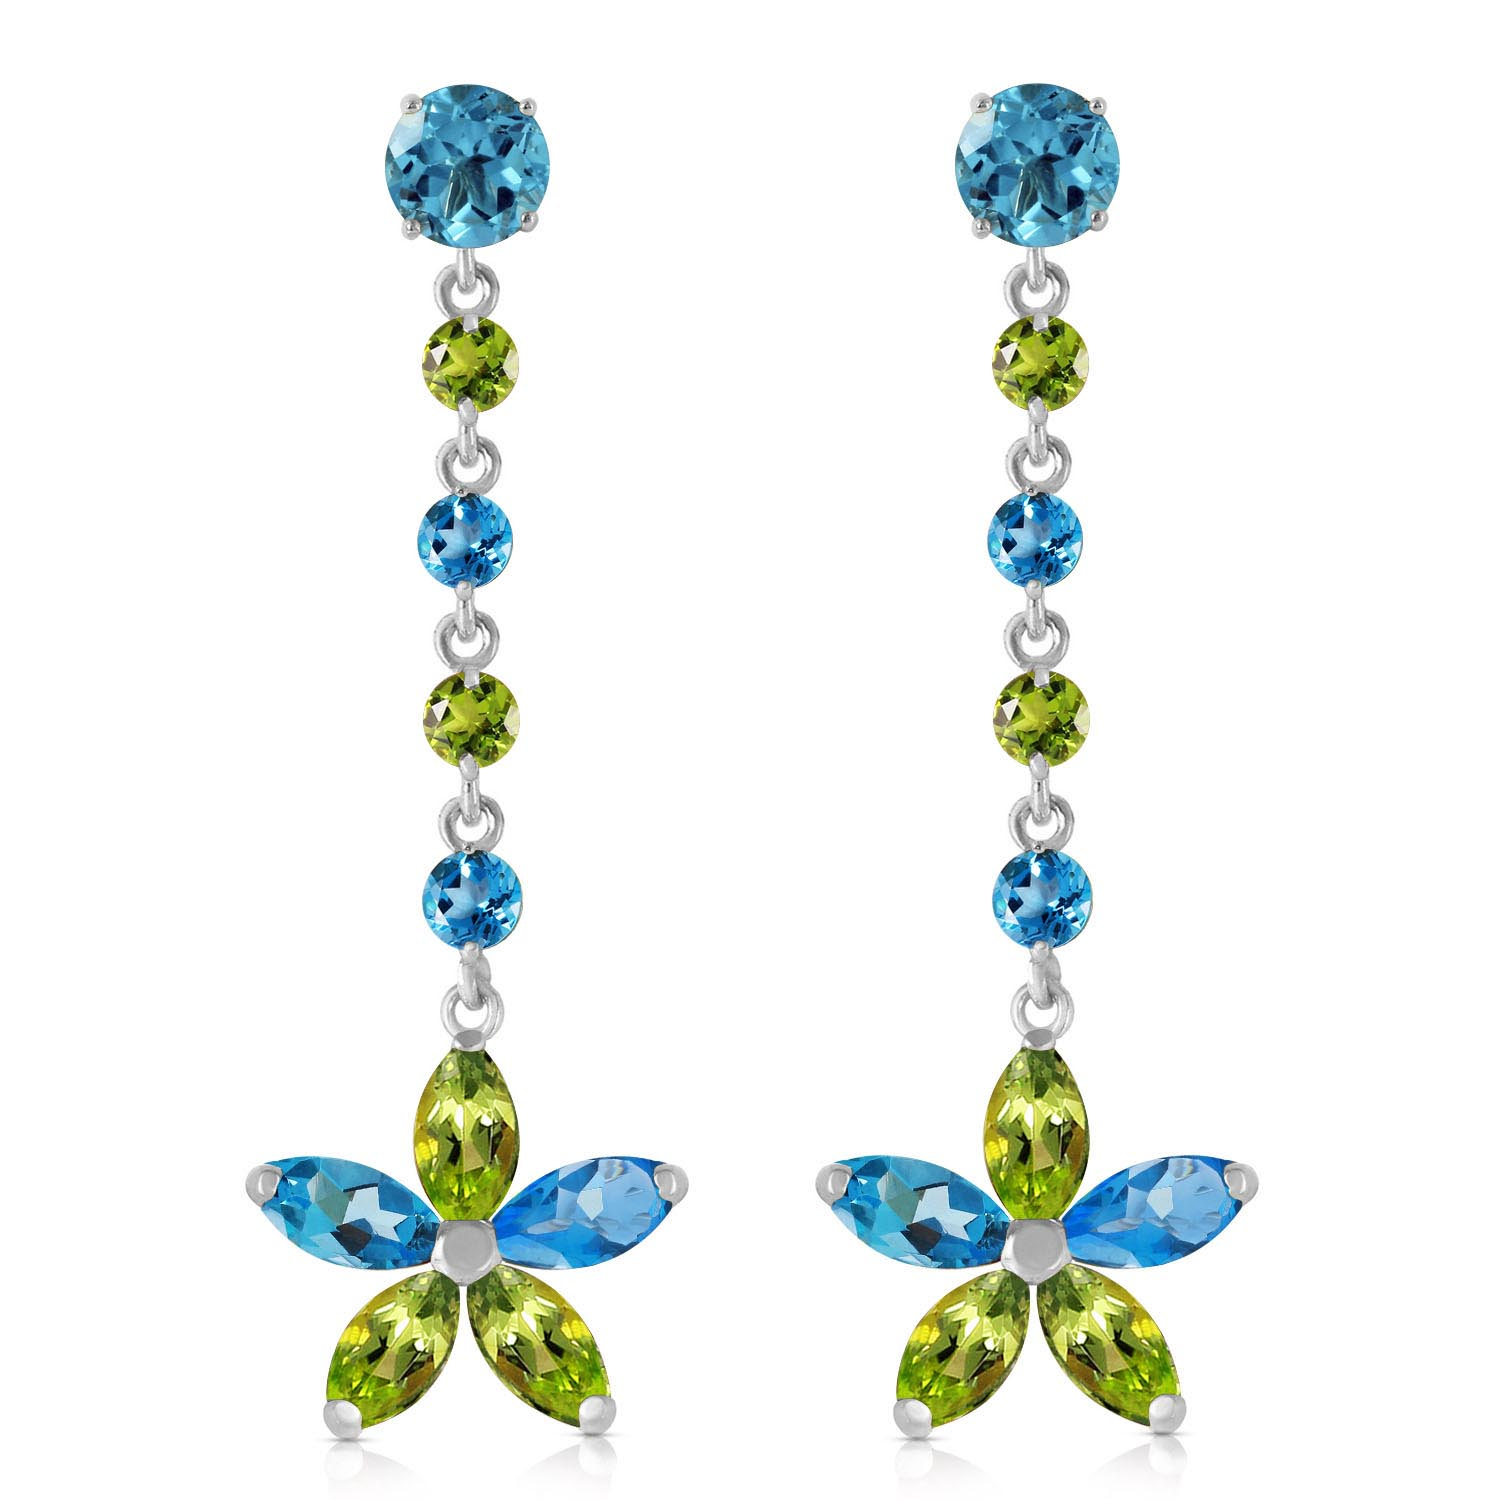 Blue Topaz and Peridot Daisy Chain Drop Earrings 4.8ctw in 9ct White Gold